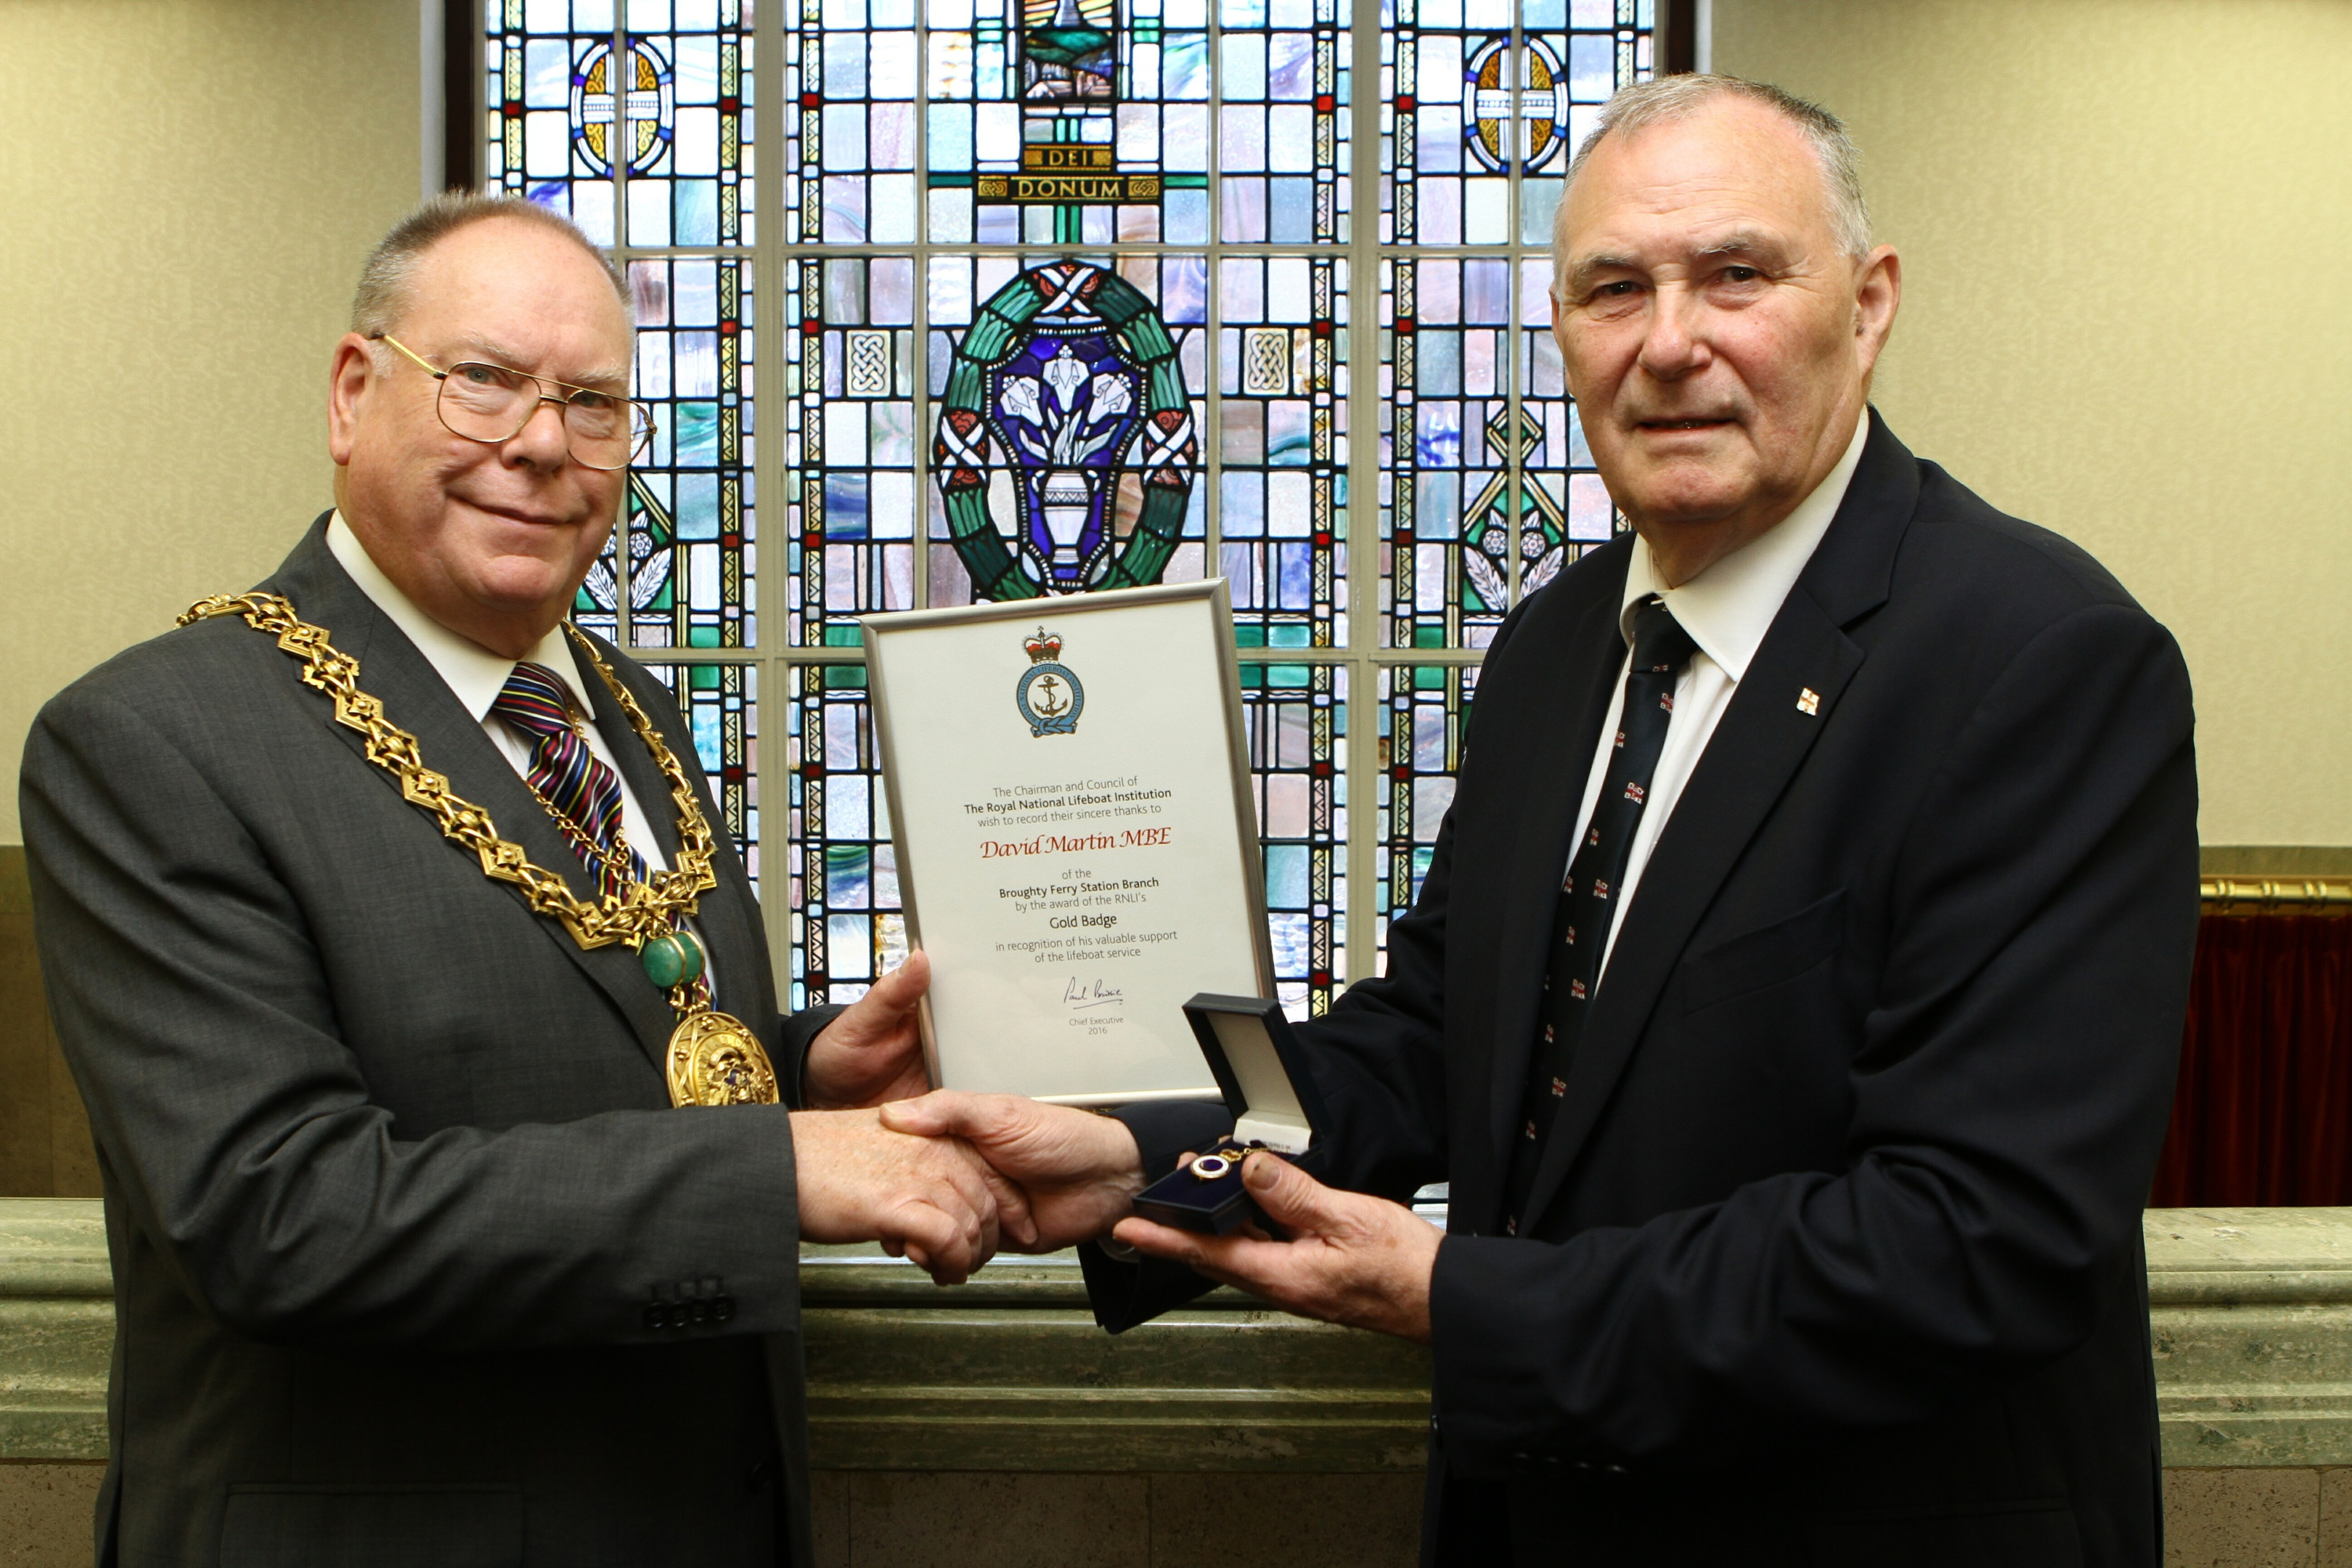 Lord Provost Bob Duncan presenting Dave with his gold badge and certificate.